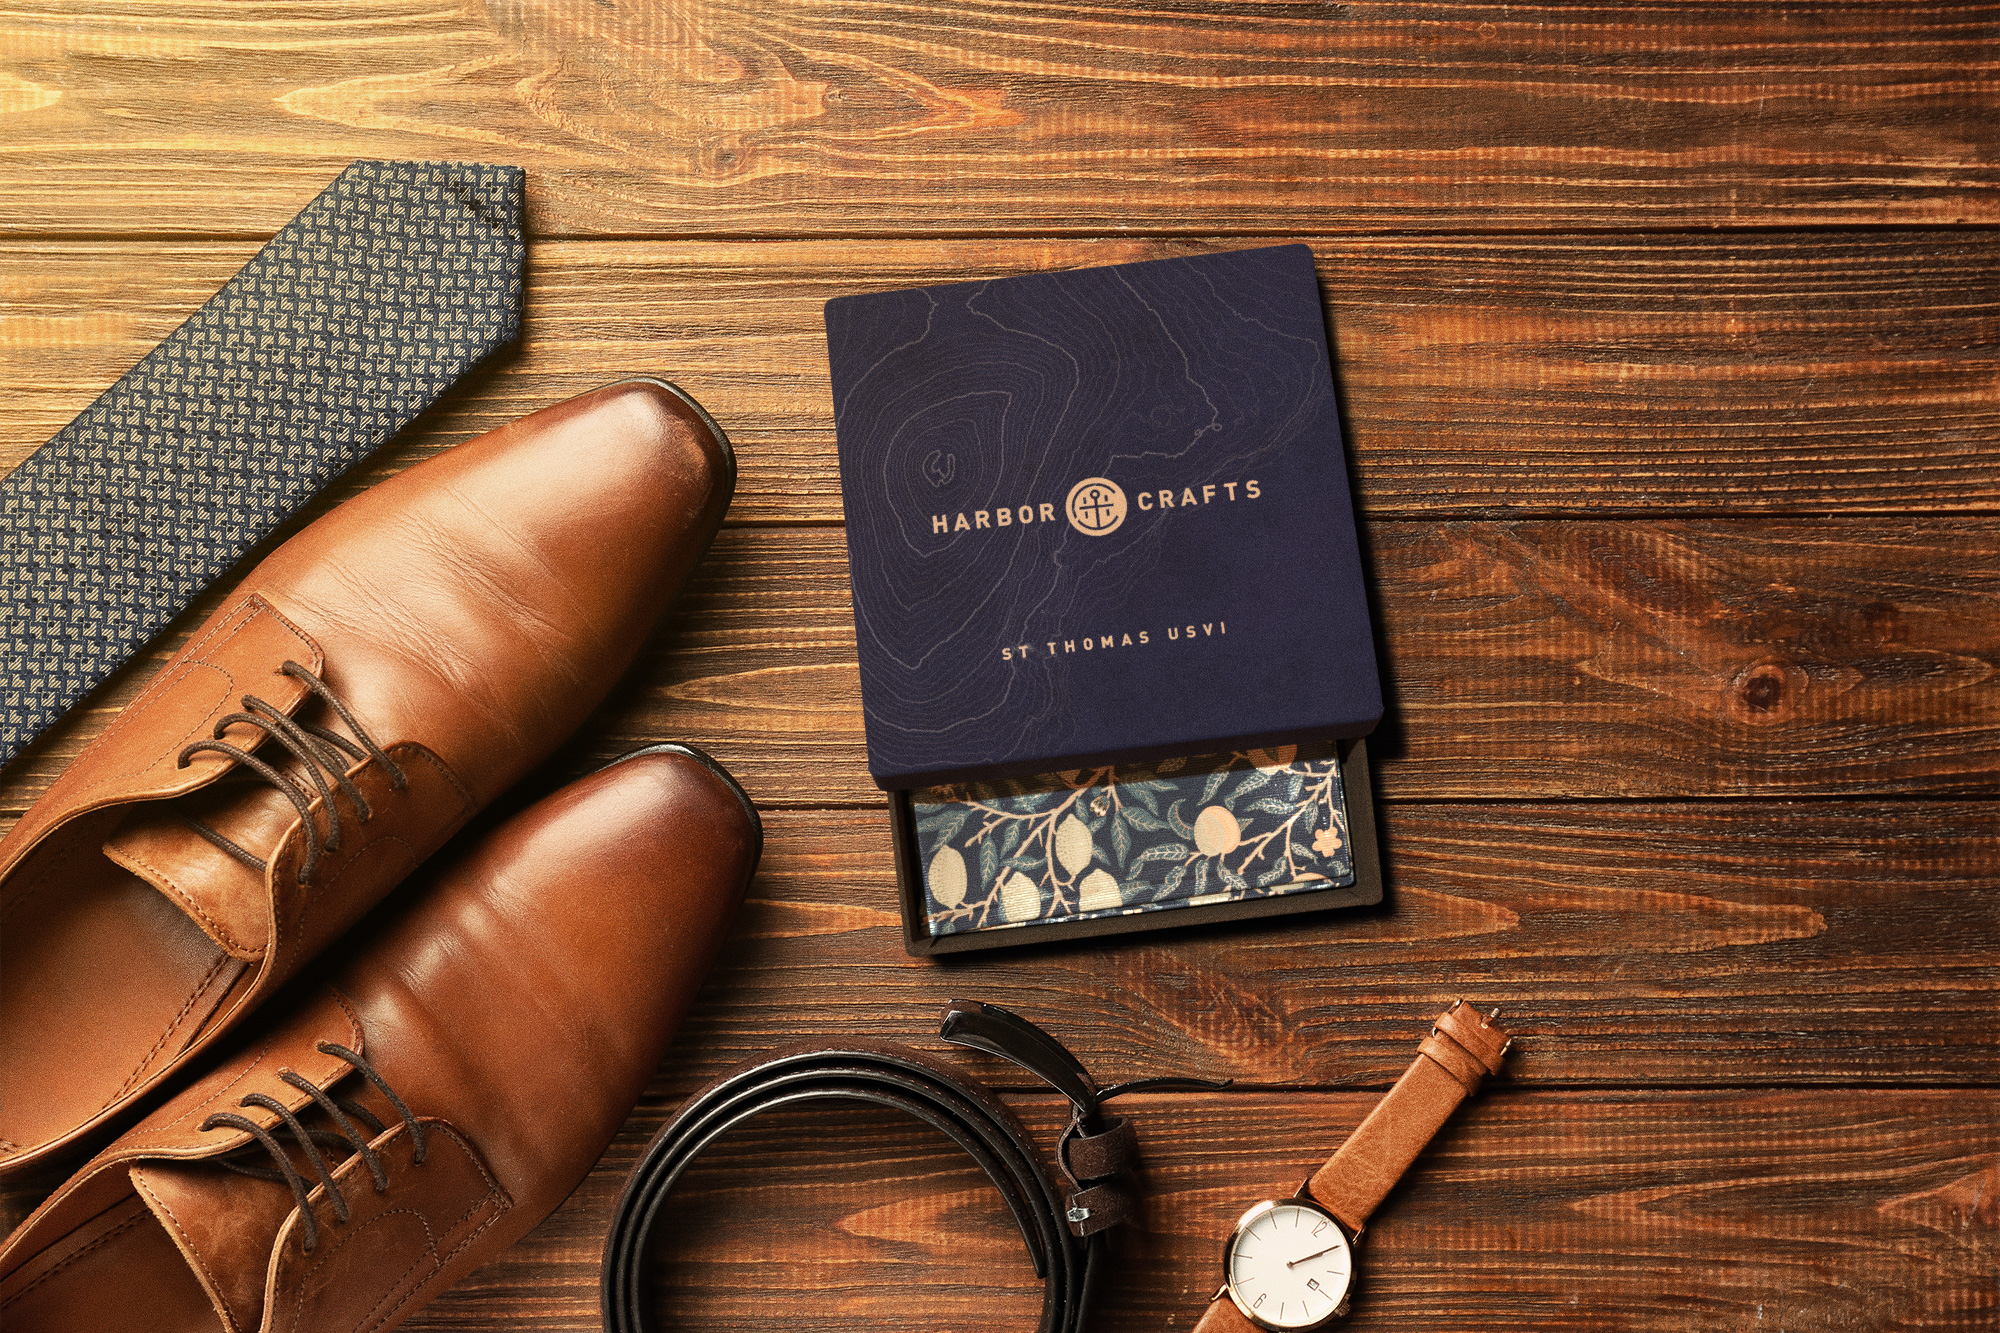 New Conceptual Men's Accessory Packaging: Harbor Crafts